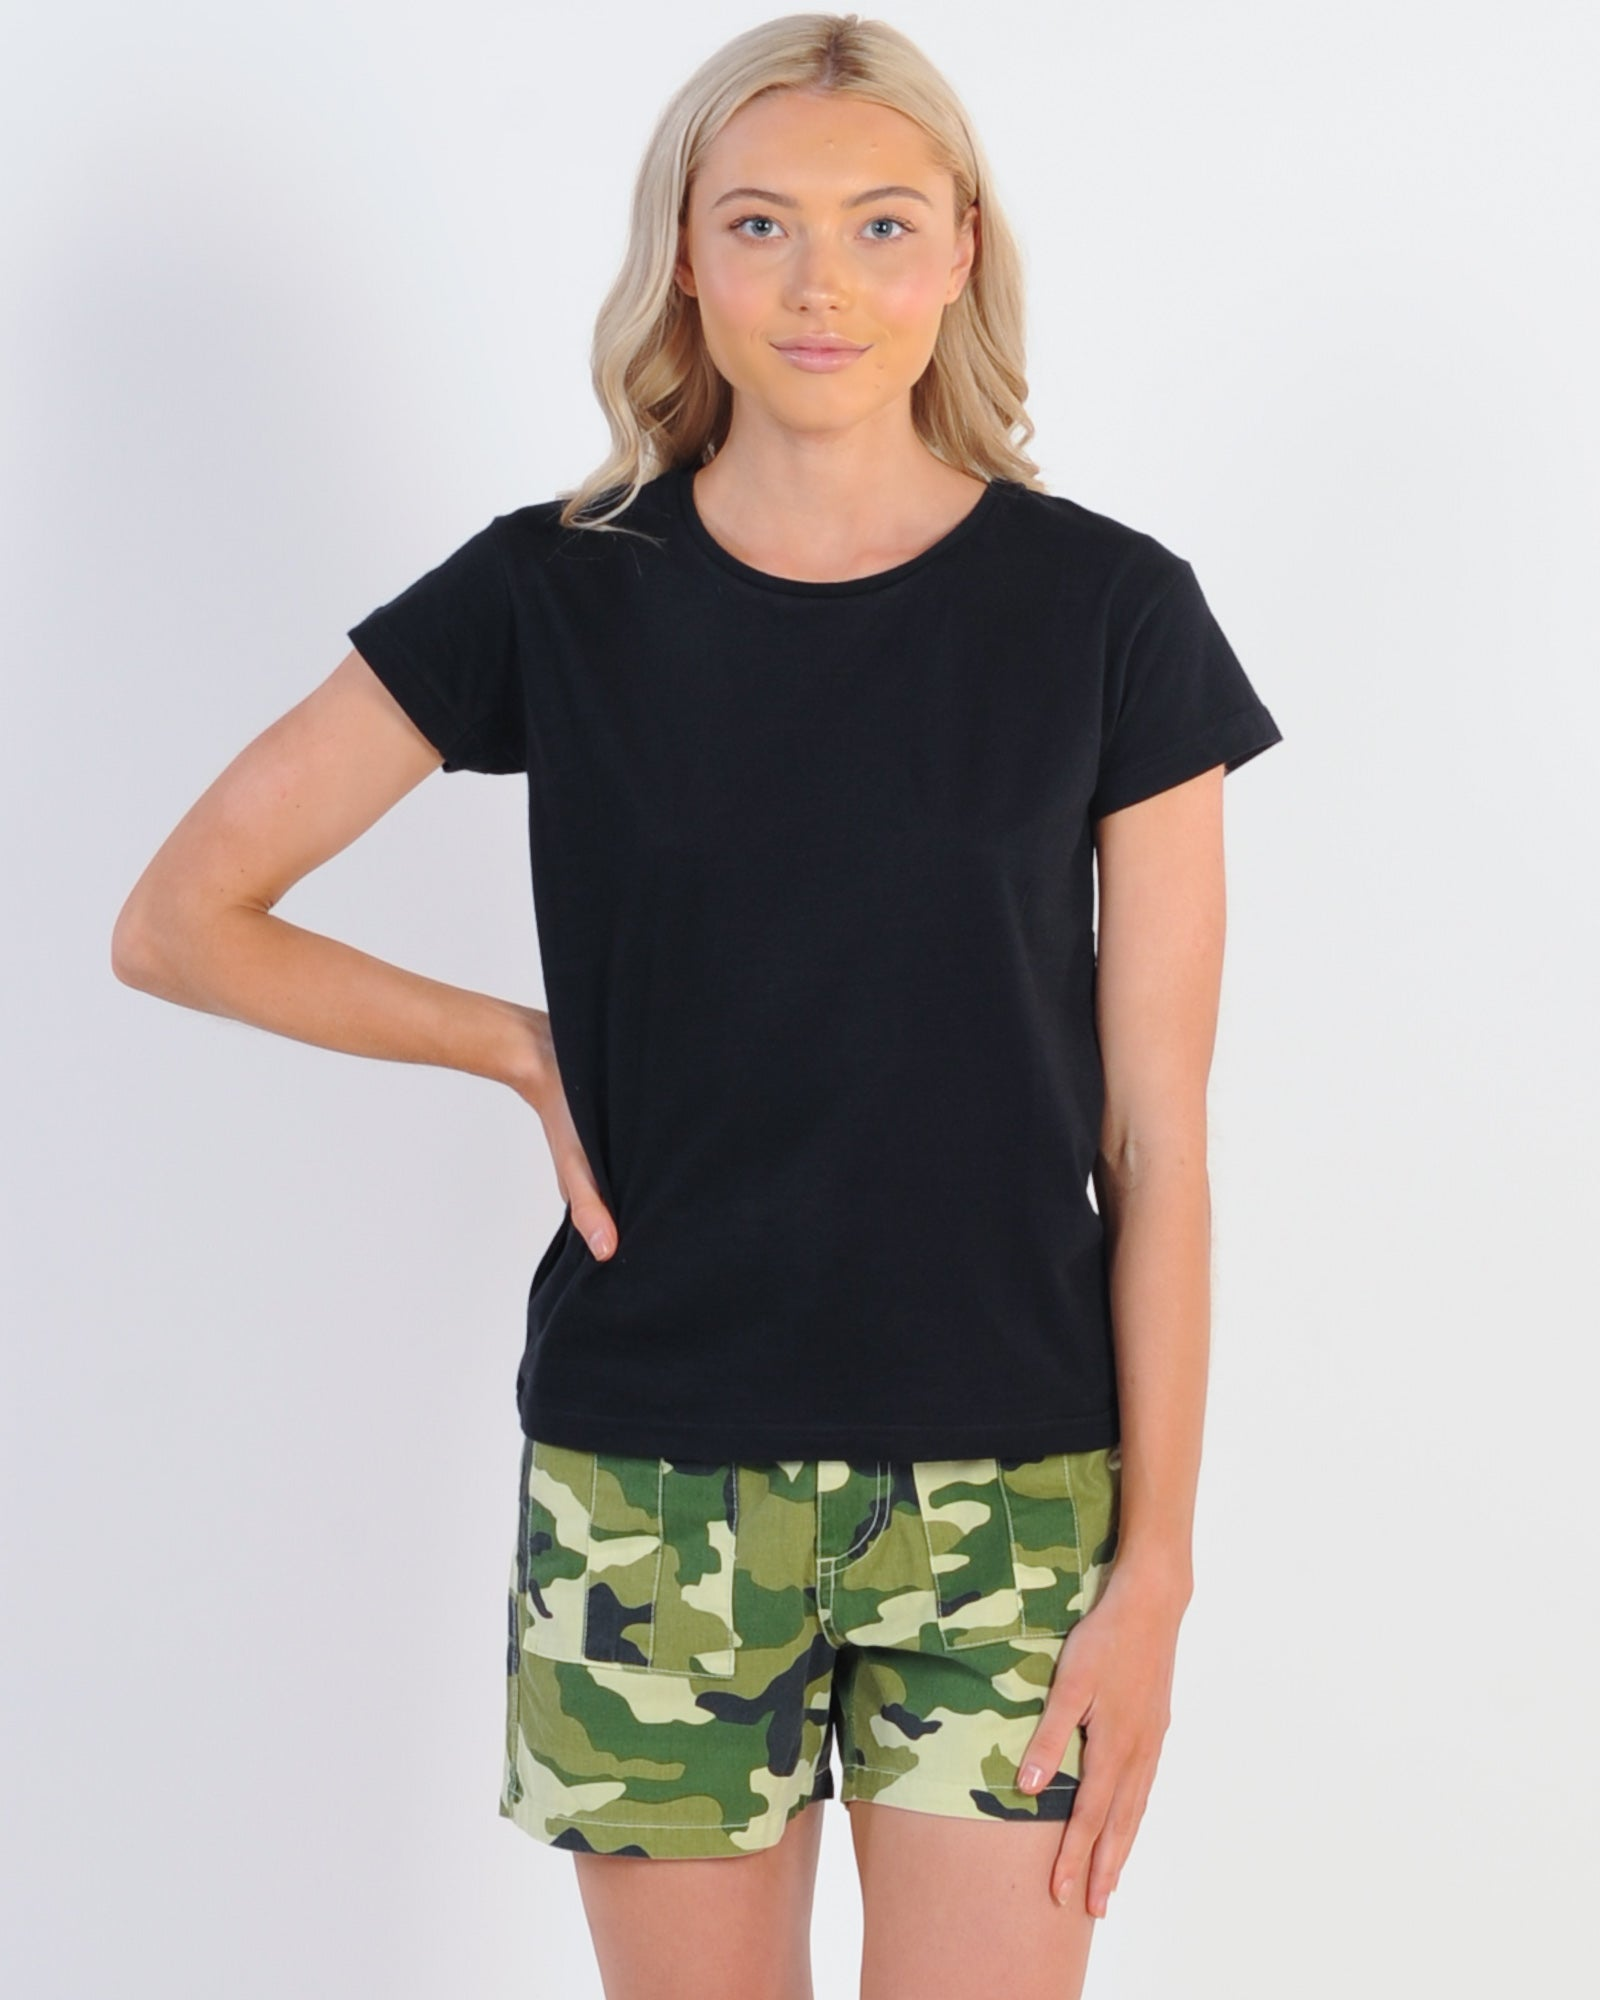 Silent Theory Polly Tee - Black